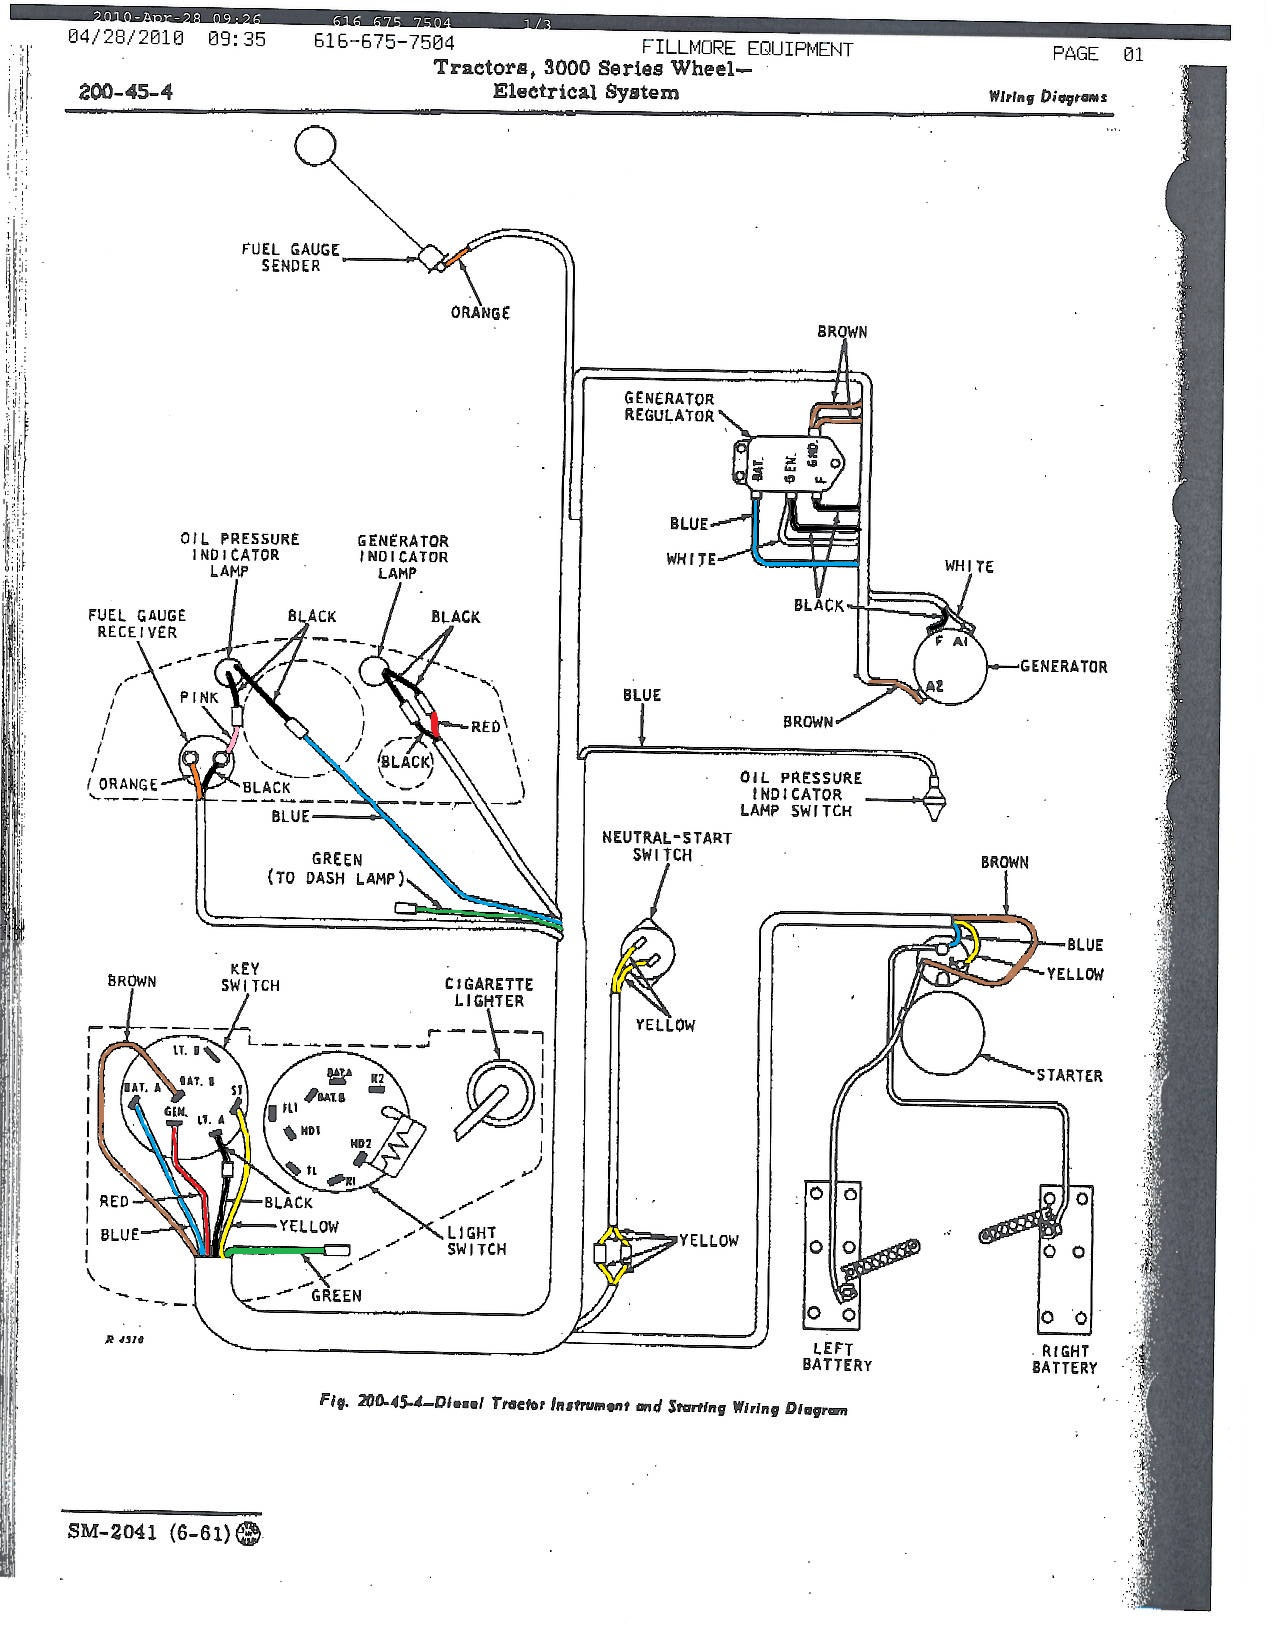 John Deere 2355 Fuel Diagram